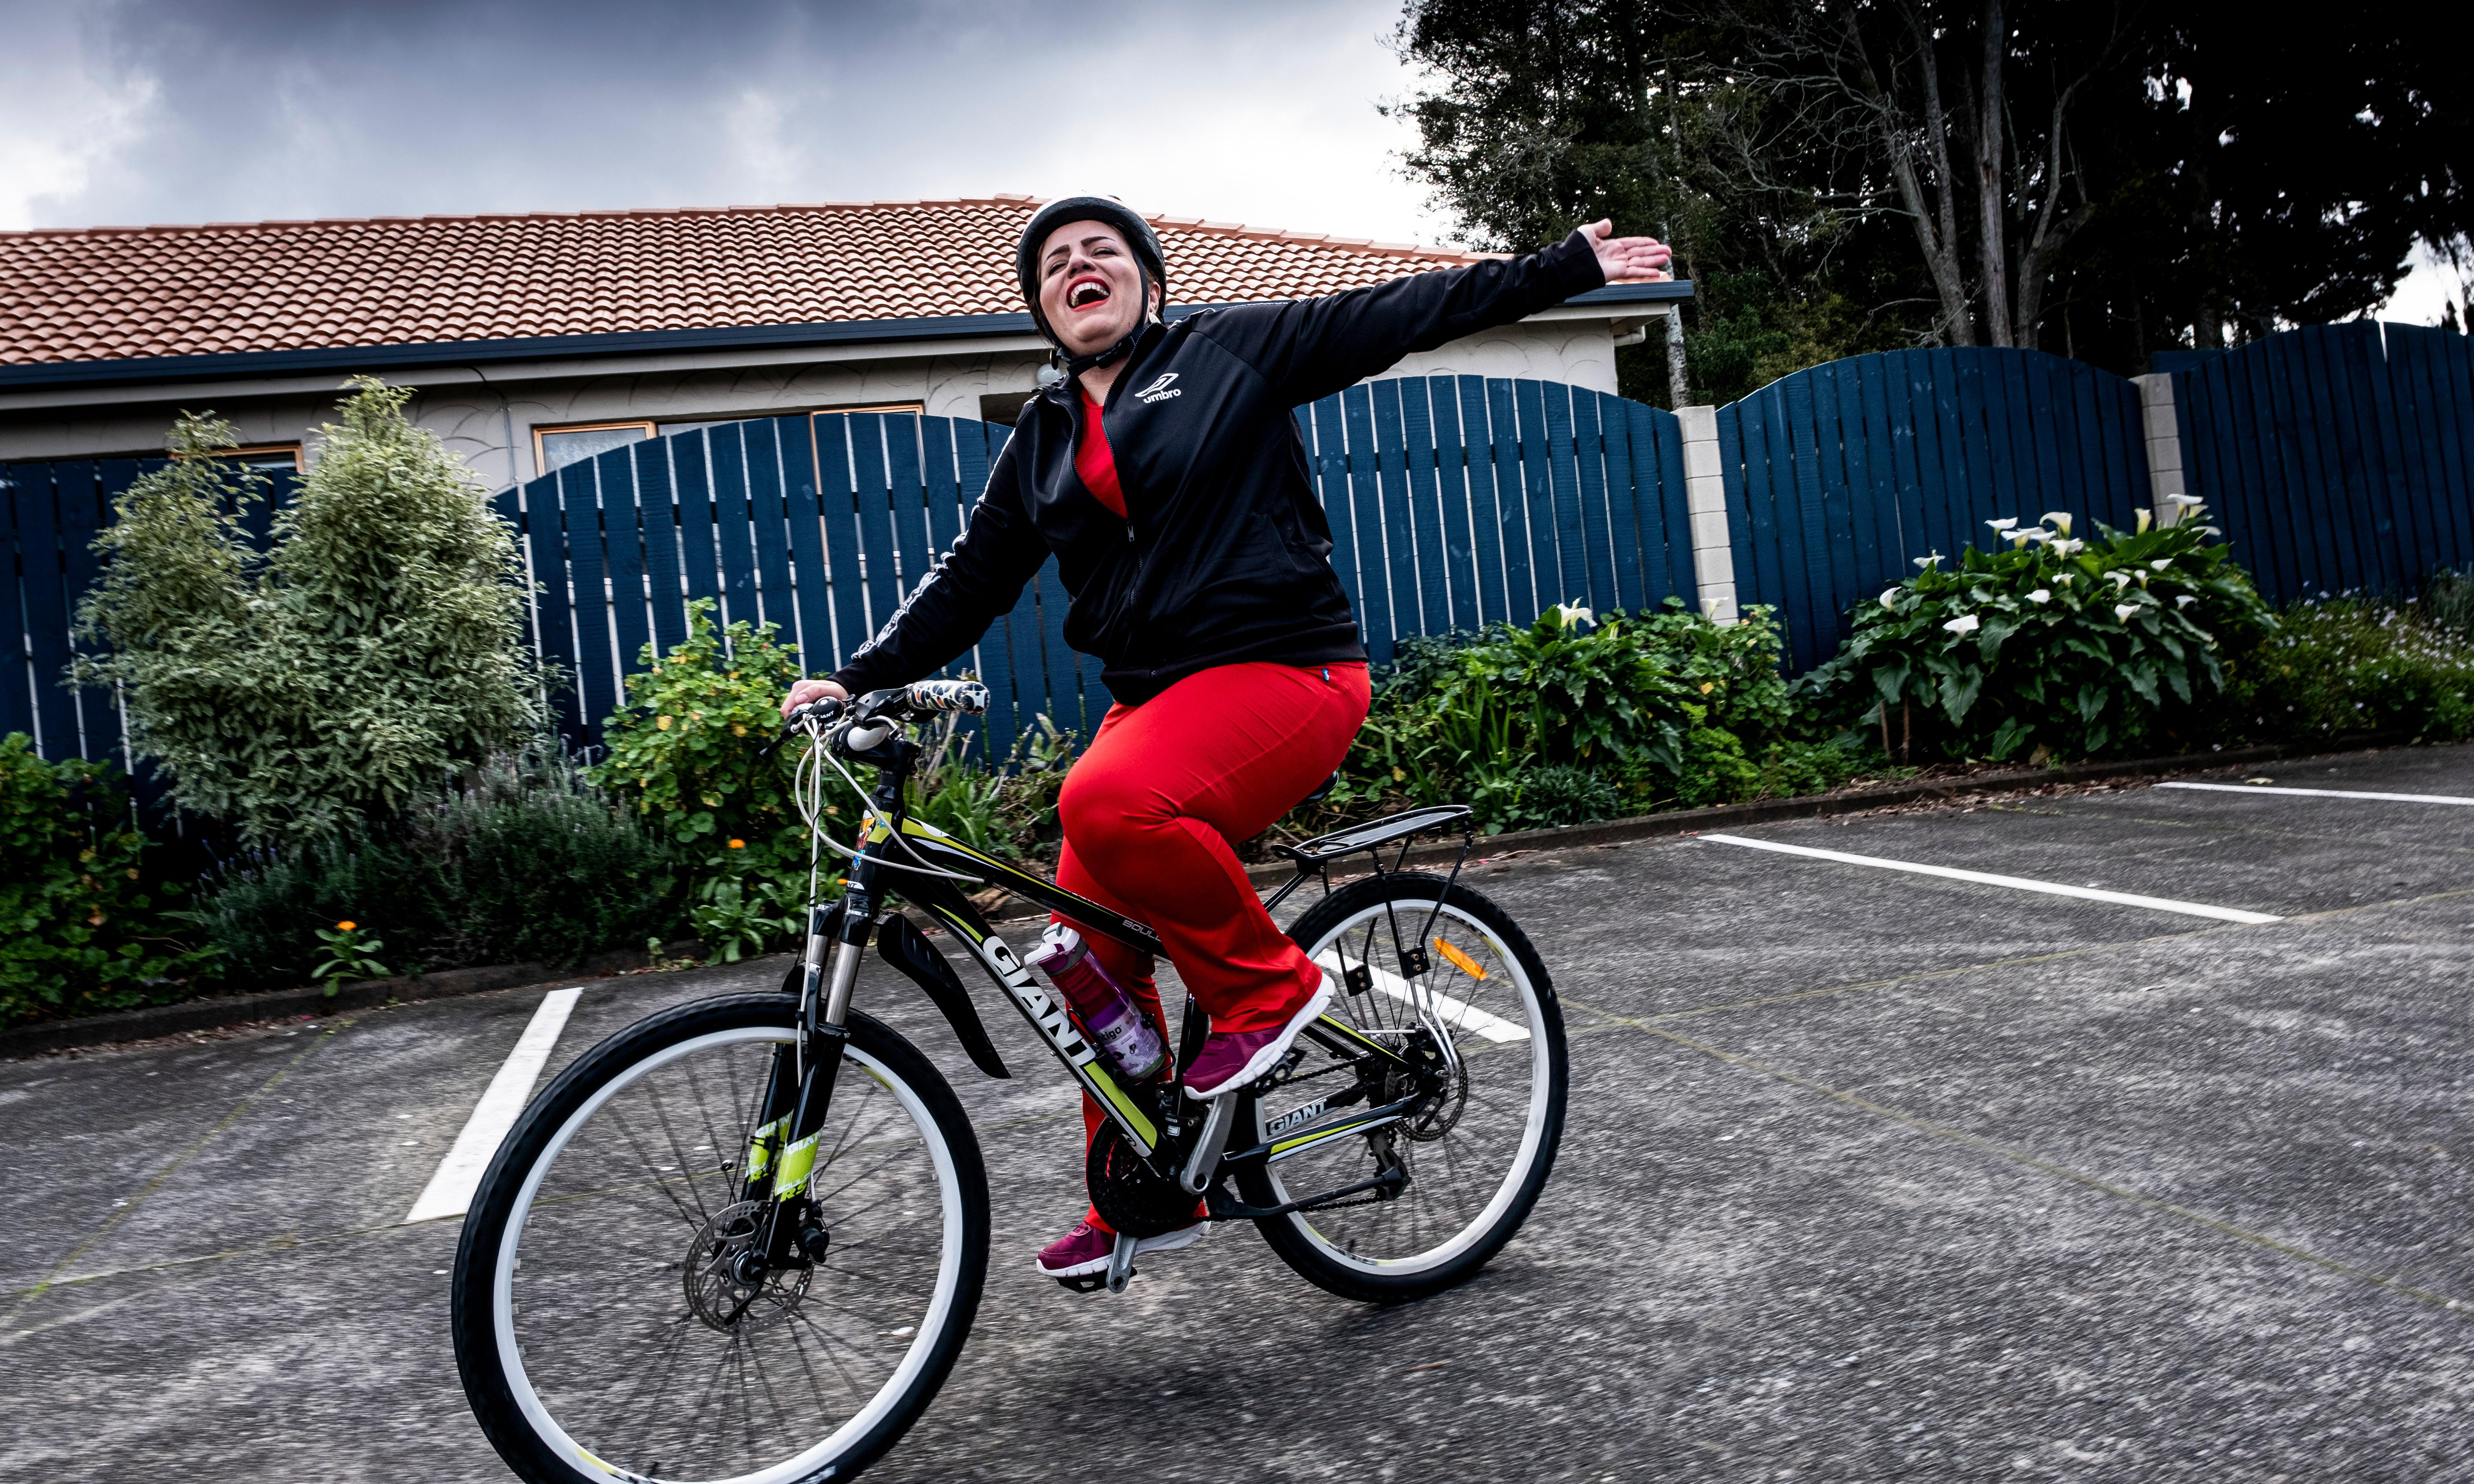 'It gave me hope': New Zealand charity gives refugees bikes and teaches them to ride